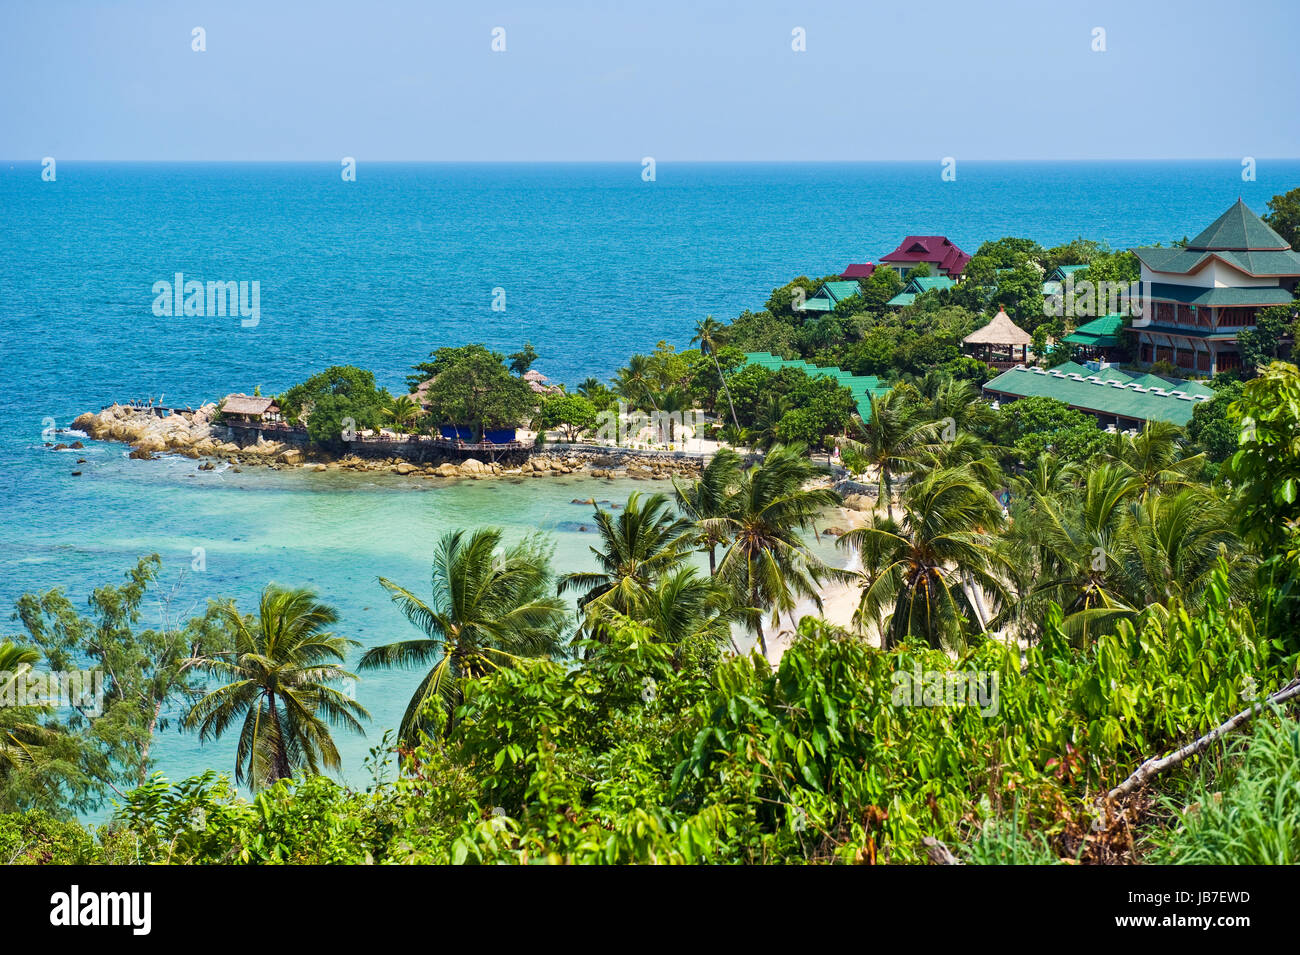 Beautiful tropical beach, Thailand Stock Photo